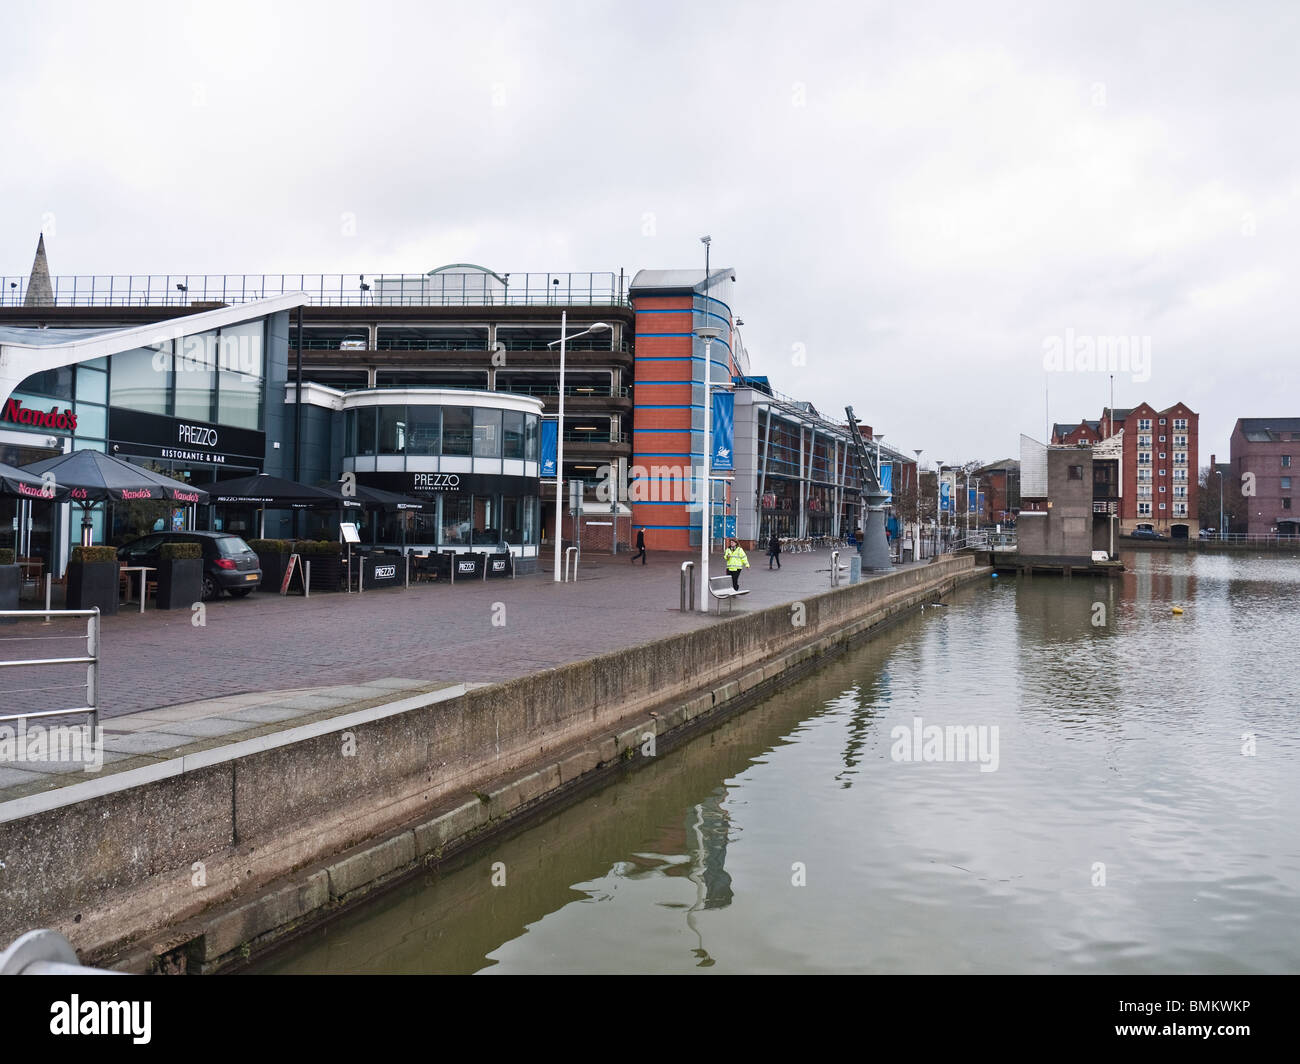 Gentrification on Brayford Wharf, River Witham, Lincoln, UK - Stock Image